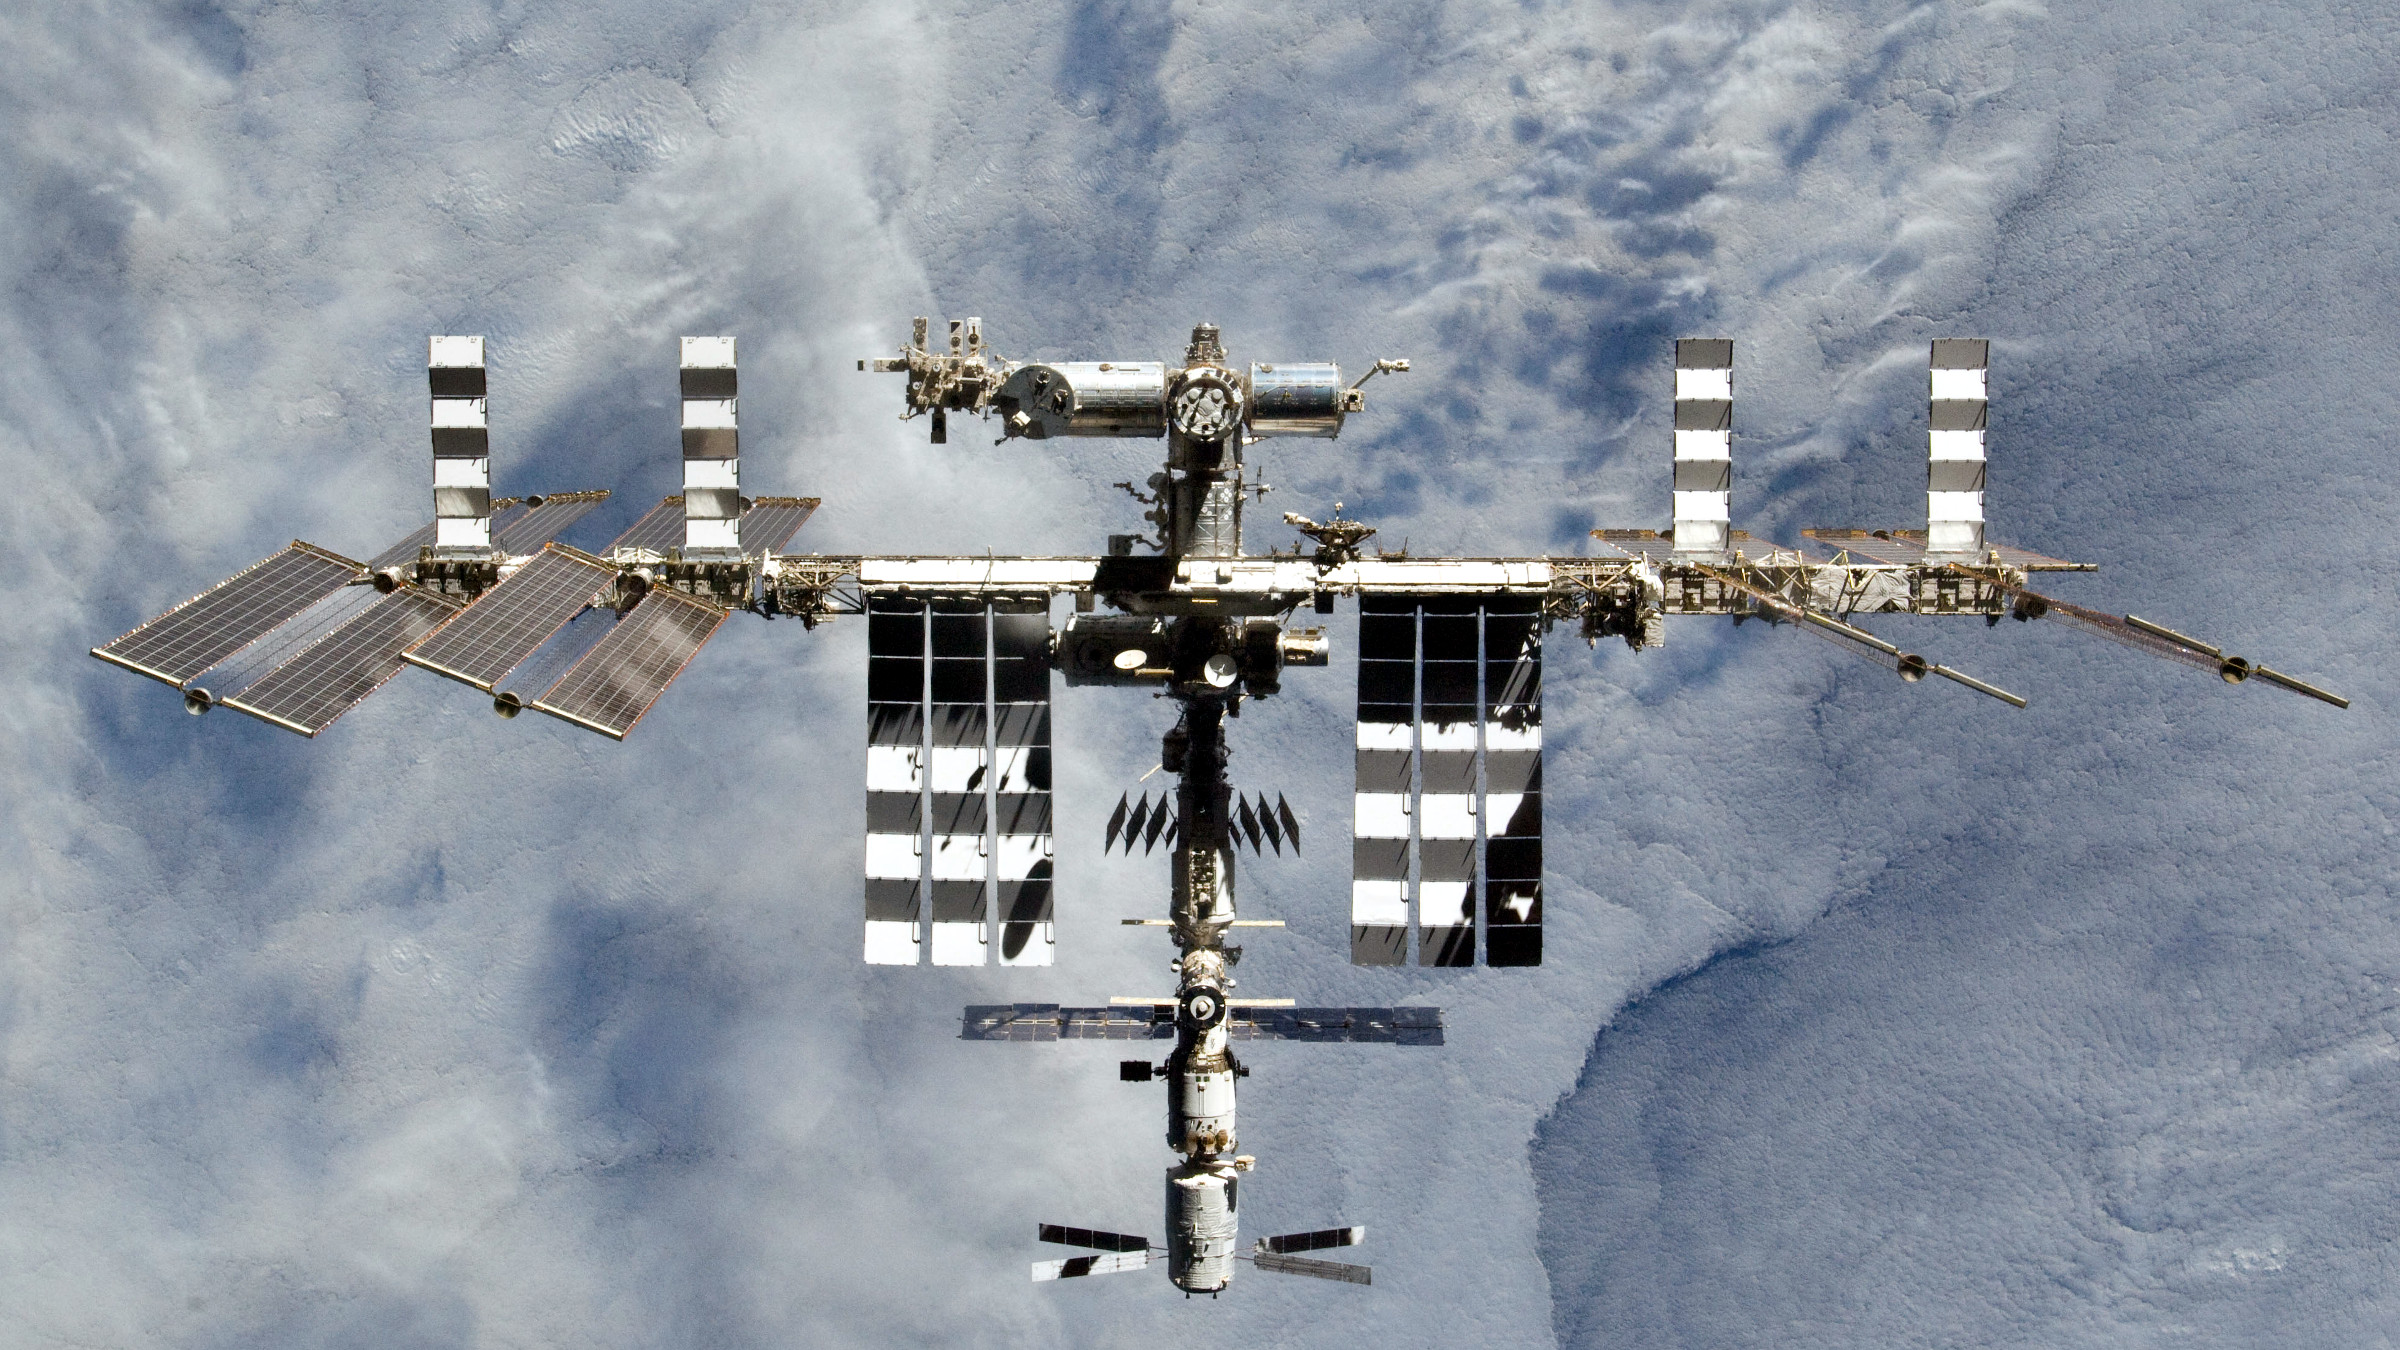 The International Space Station seen from the space shuttle in 2011.